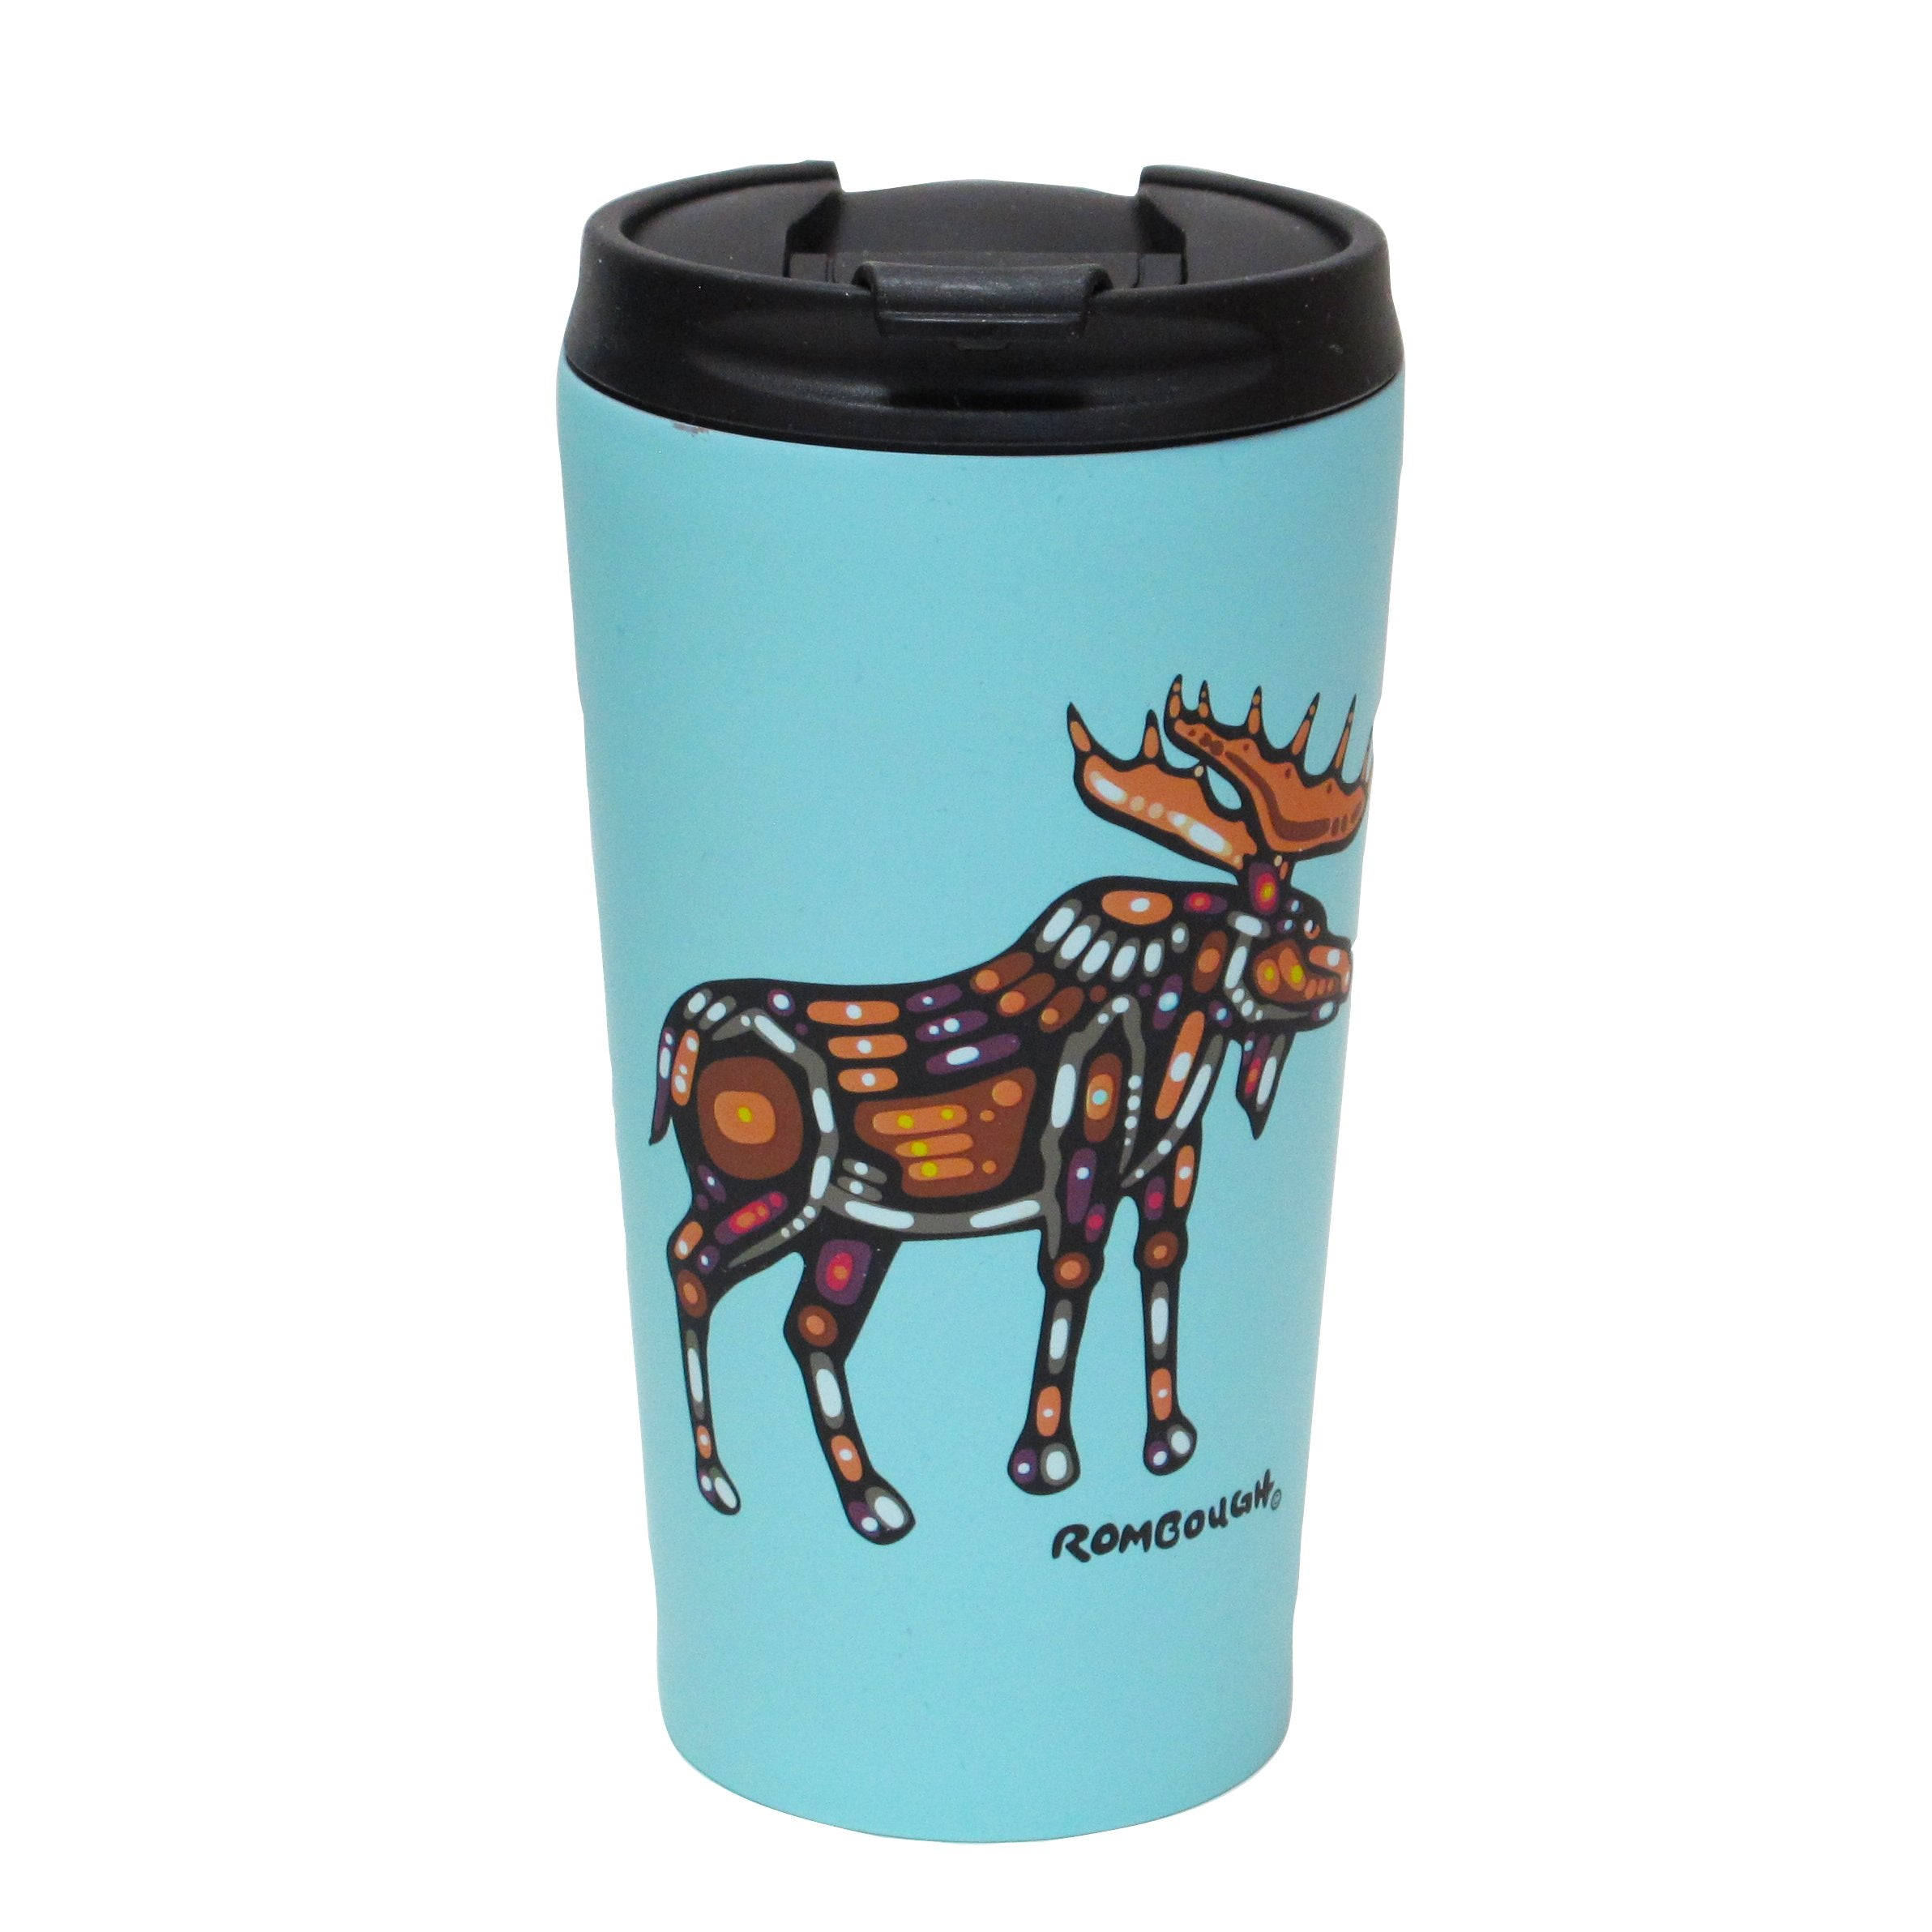 John Rombough Moose Travel Mug - Oscardo